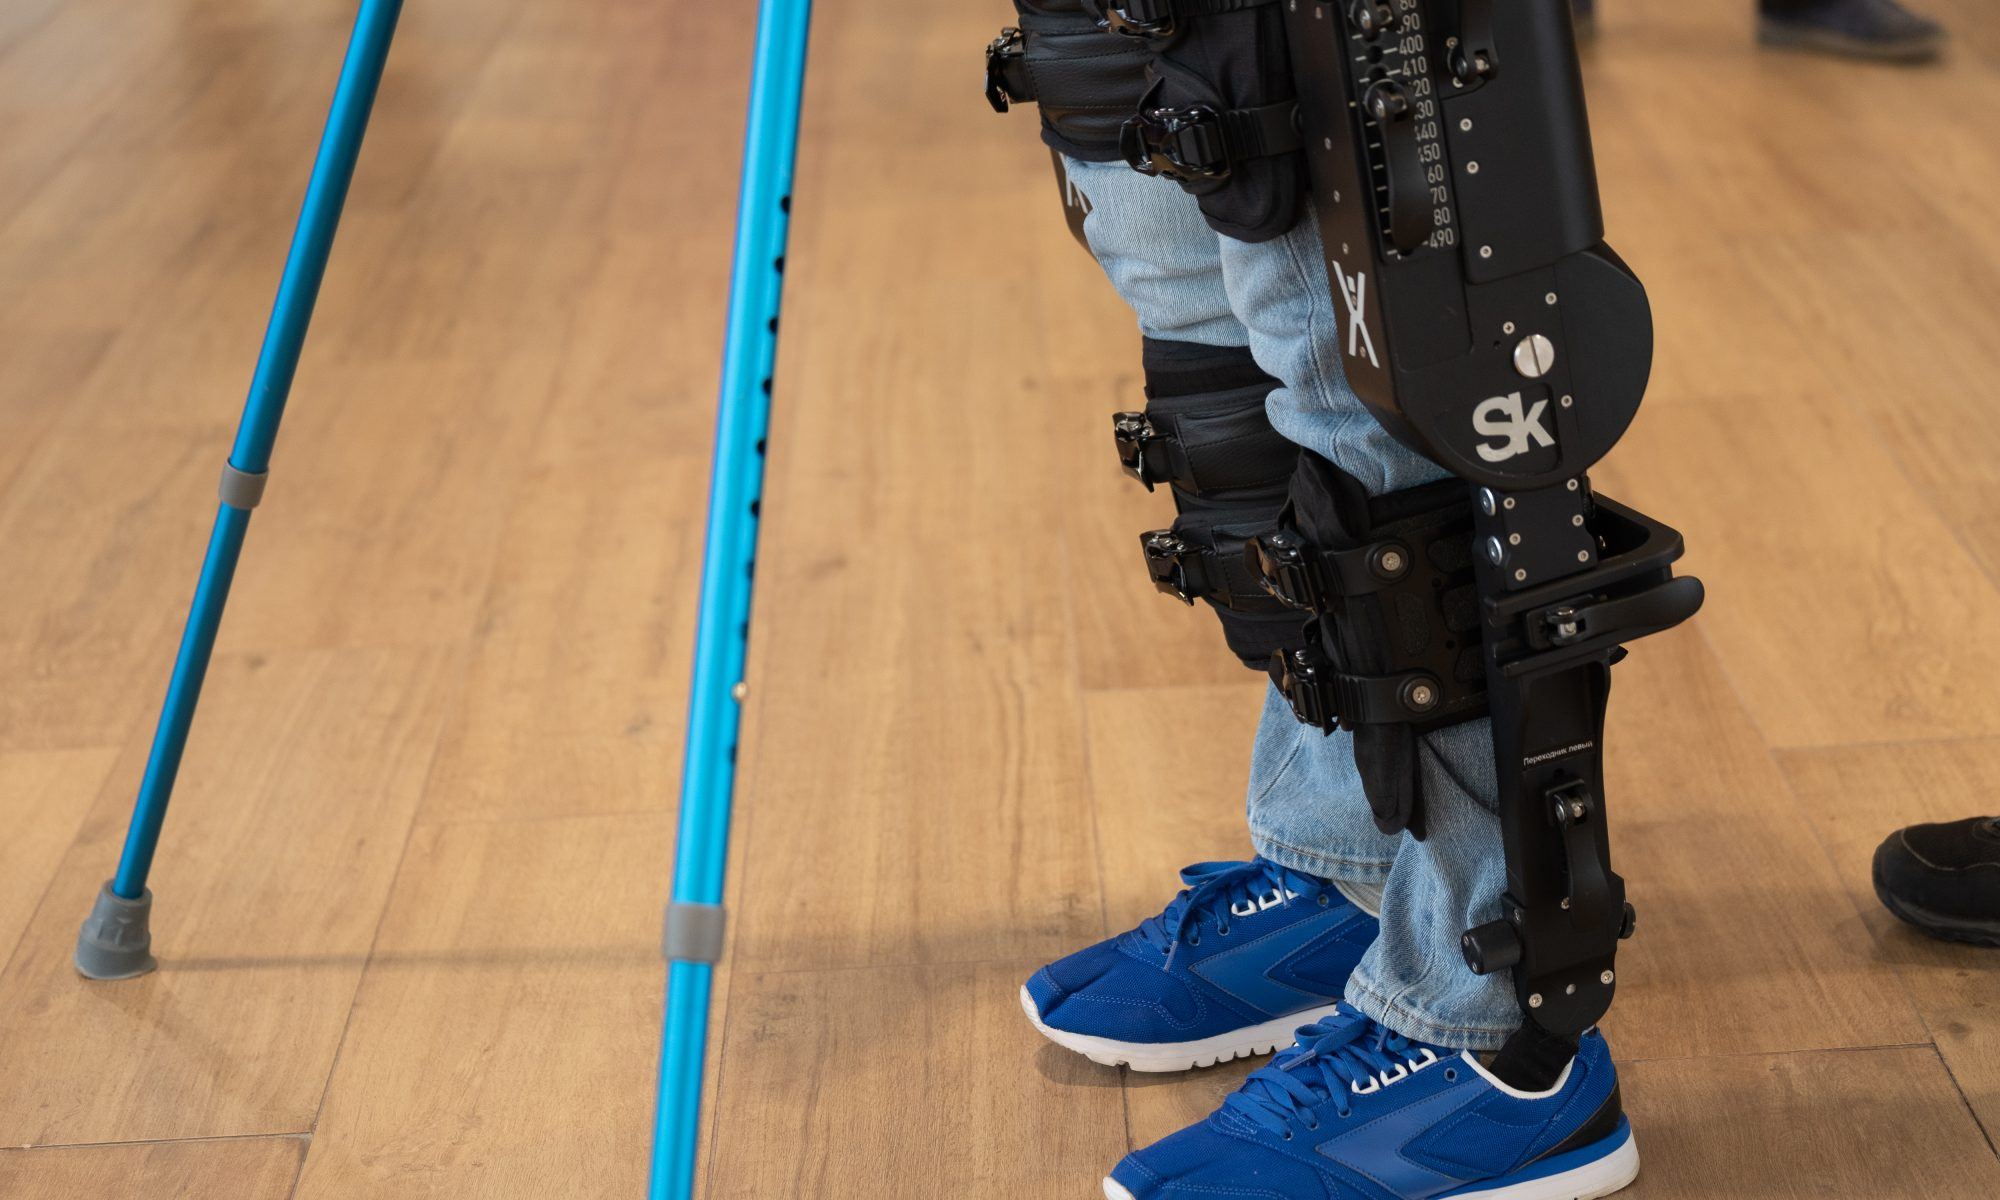 Exoskeleton to help a person walk